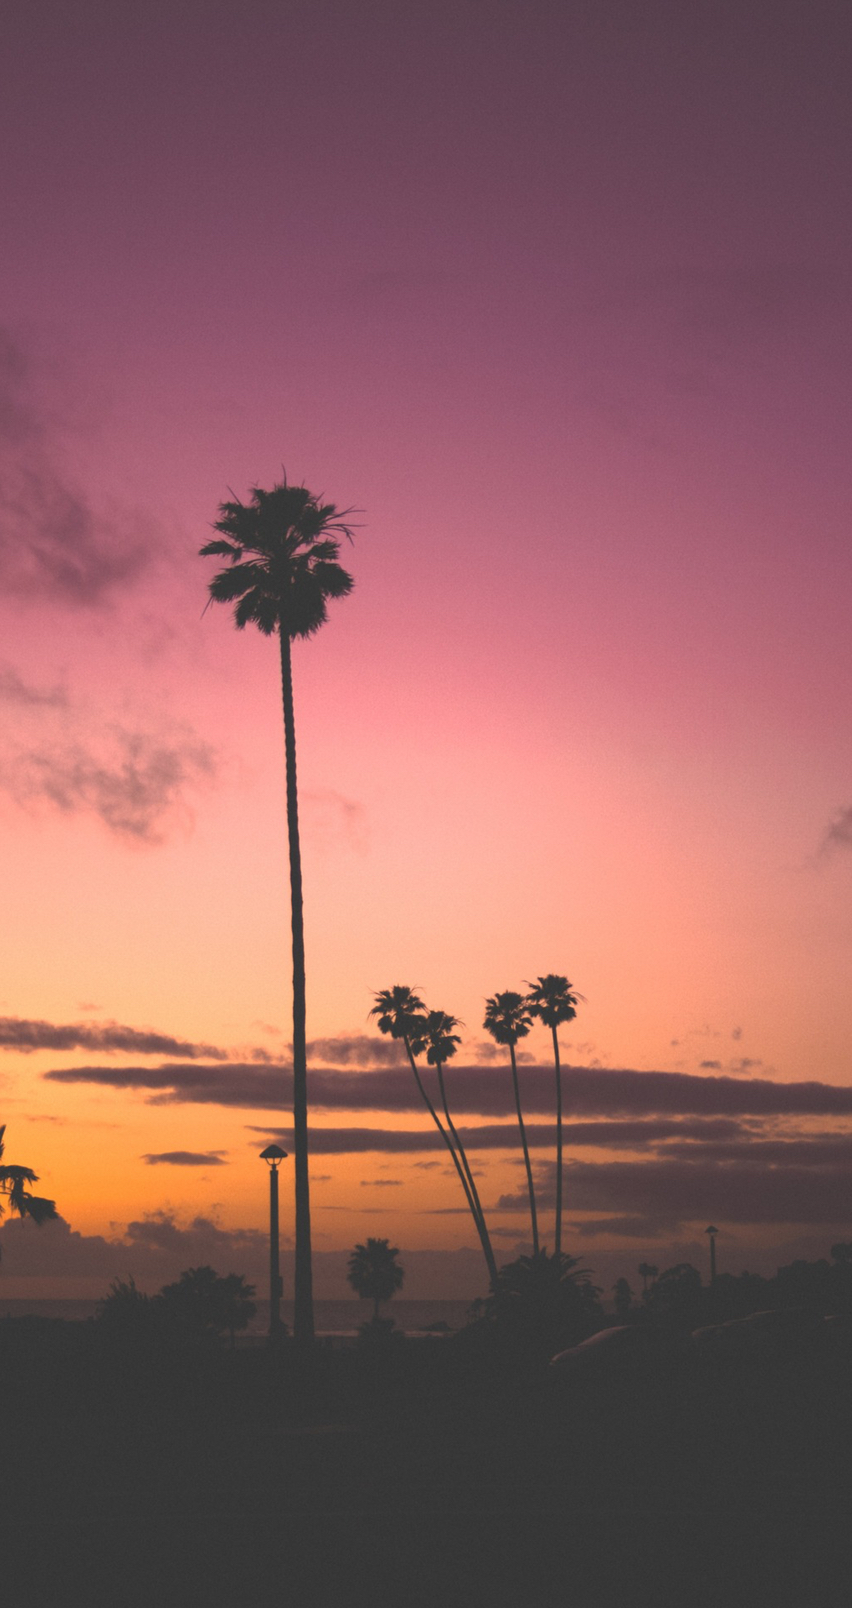 Download At 852 X 1608 In IPhone Wallpaper Collections